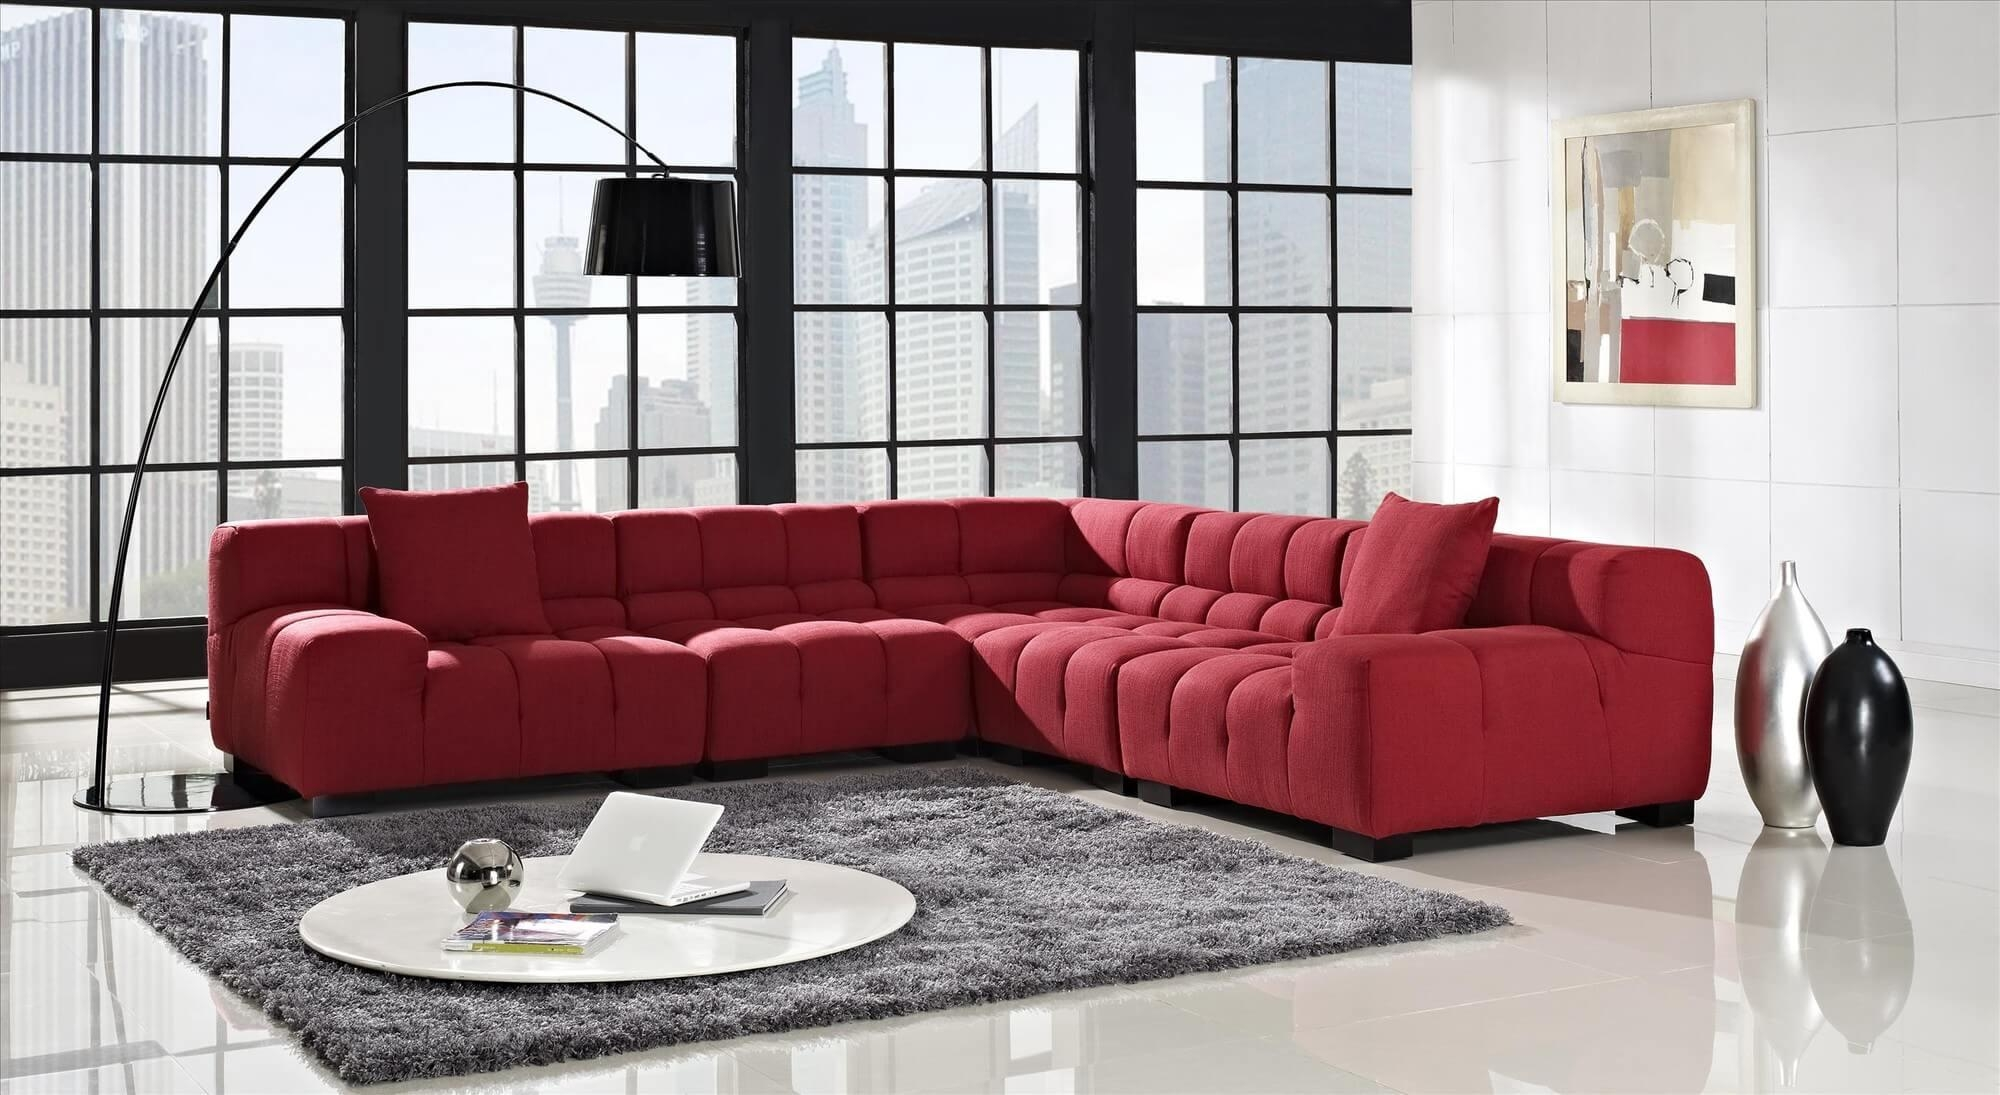 Good Tufted Sectionals Sofas 89 With Additional High End Leather Within High End Leather Sectionals (Image 7 of 20)